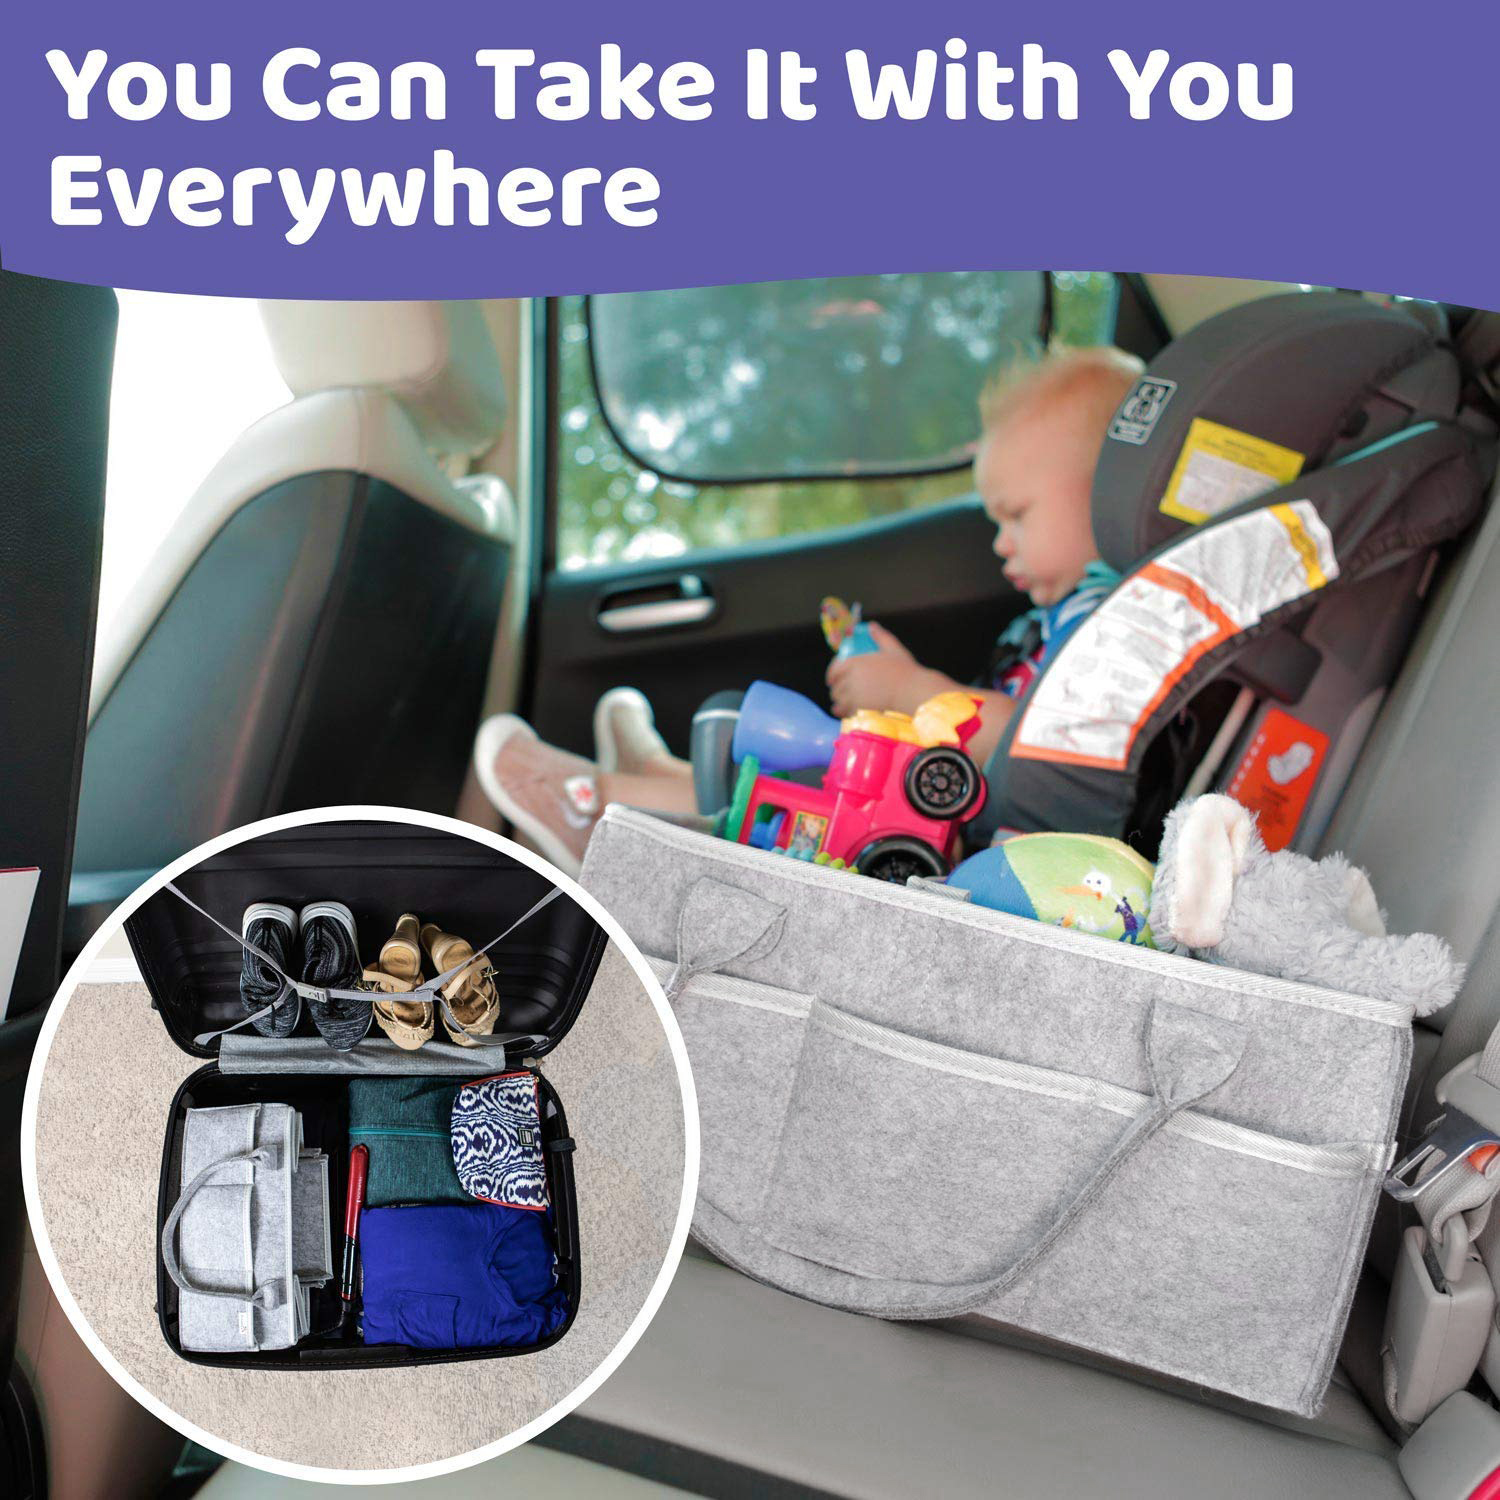 HTB1pPPiXPzuK1Rjy0Fpq6yEpFXaH Baby Diaper Caddy Organizer Portable Holder Bag for Changing Table and Car, Nursery Essentials Storage bins 38*23*18cm